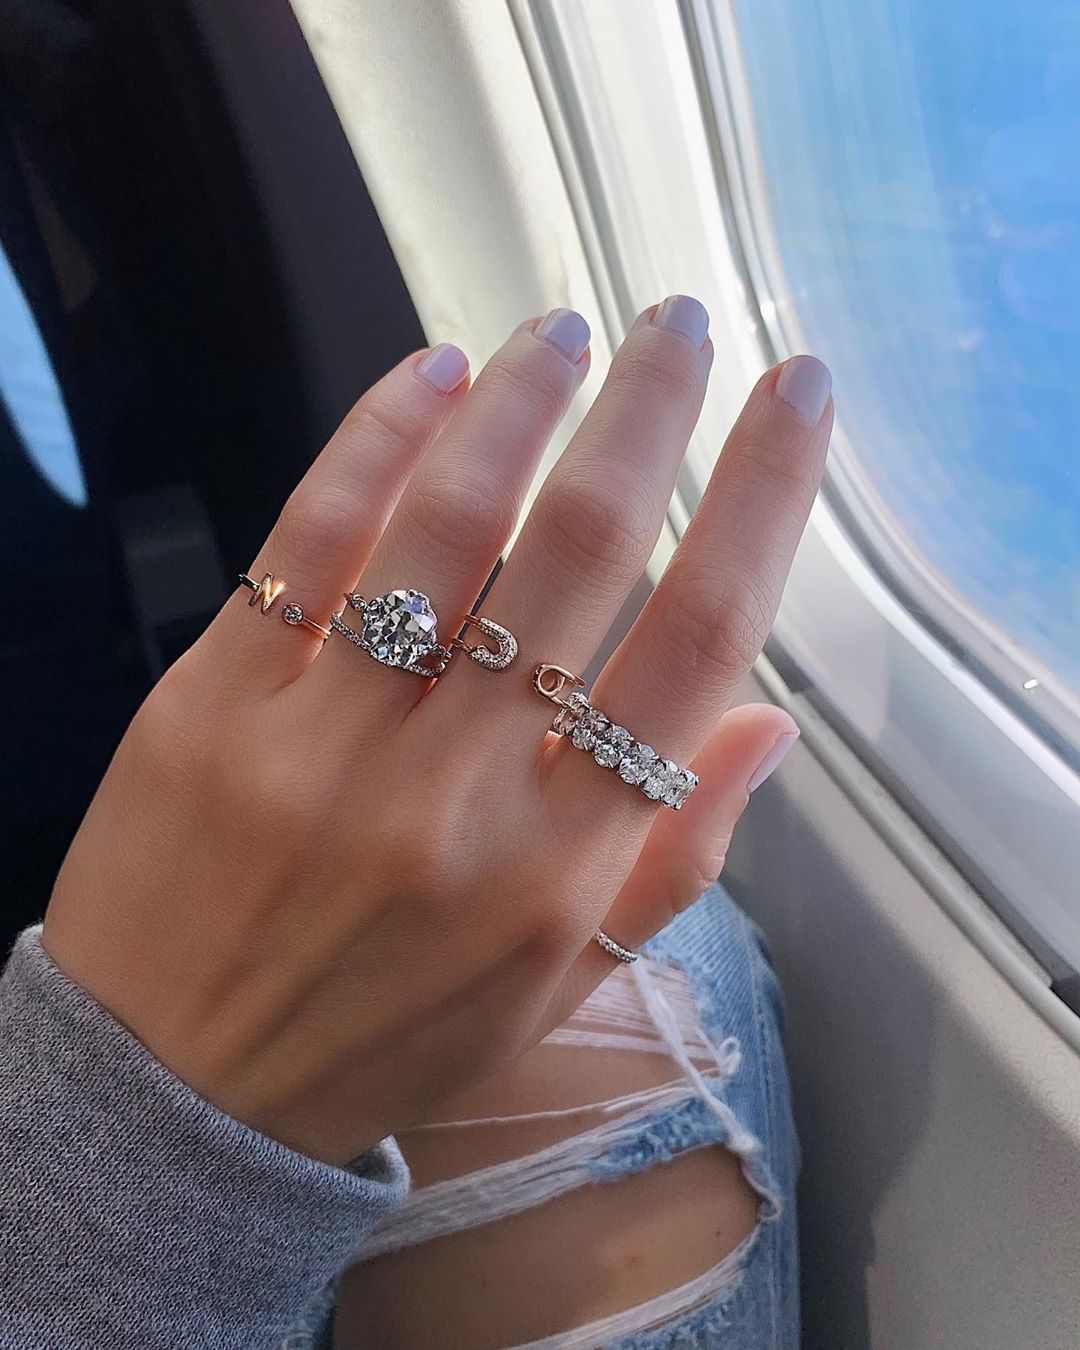 Ring Concierge On Instagram Back To Reality Jewelry Geode Earrings Unique Diamond Engagement Rings